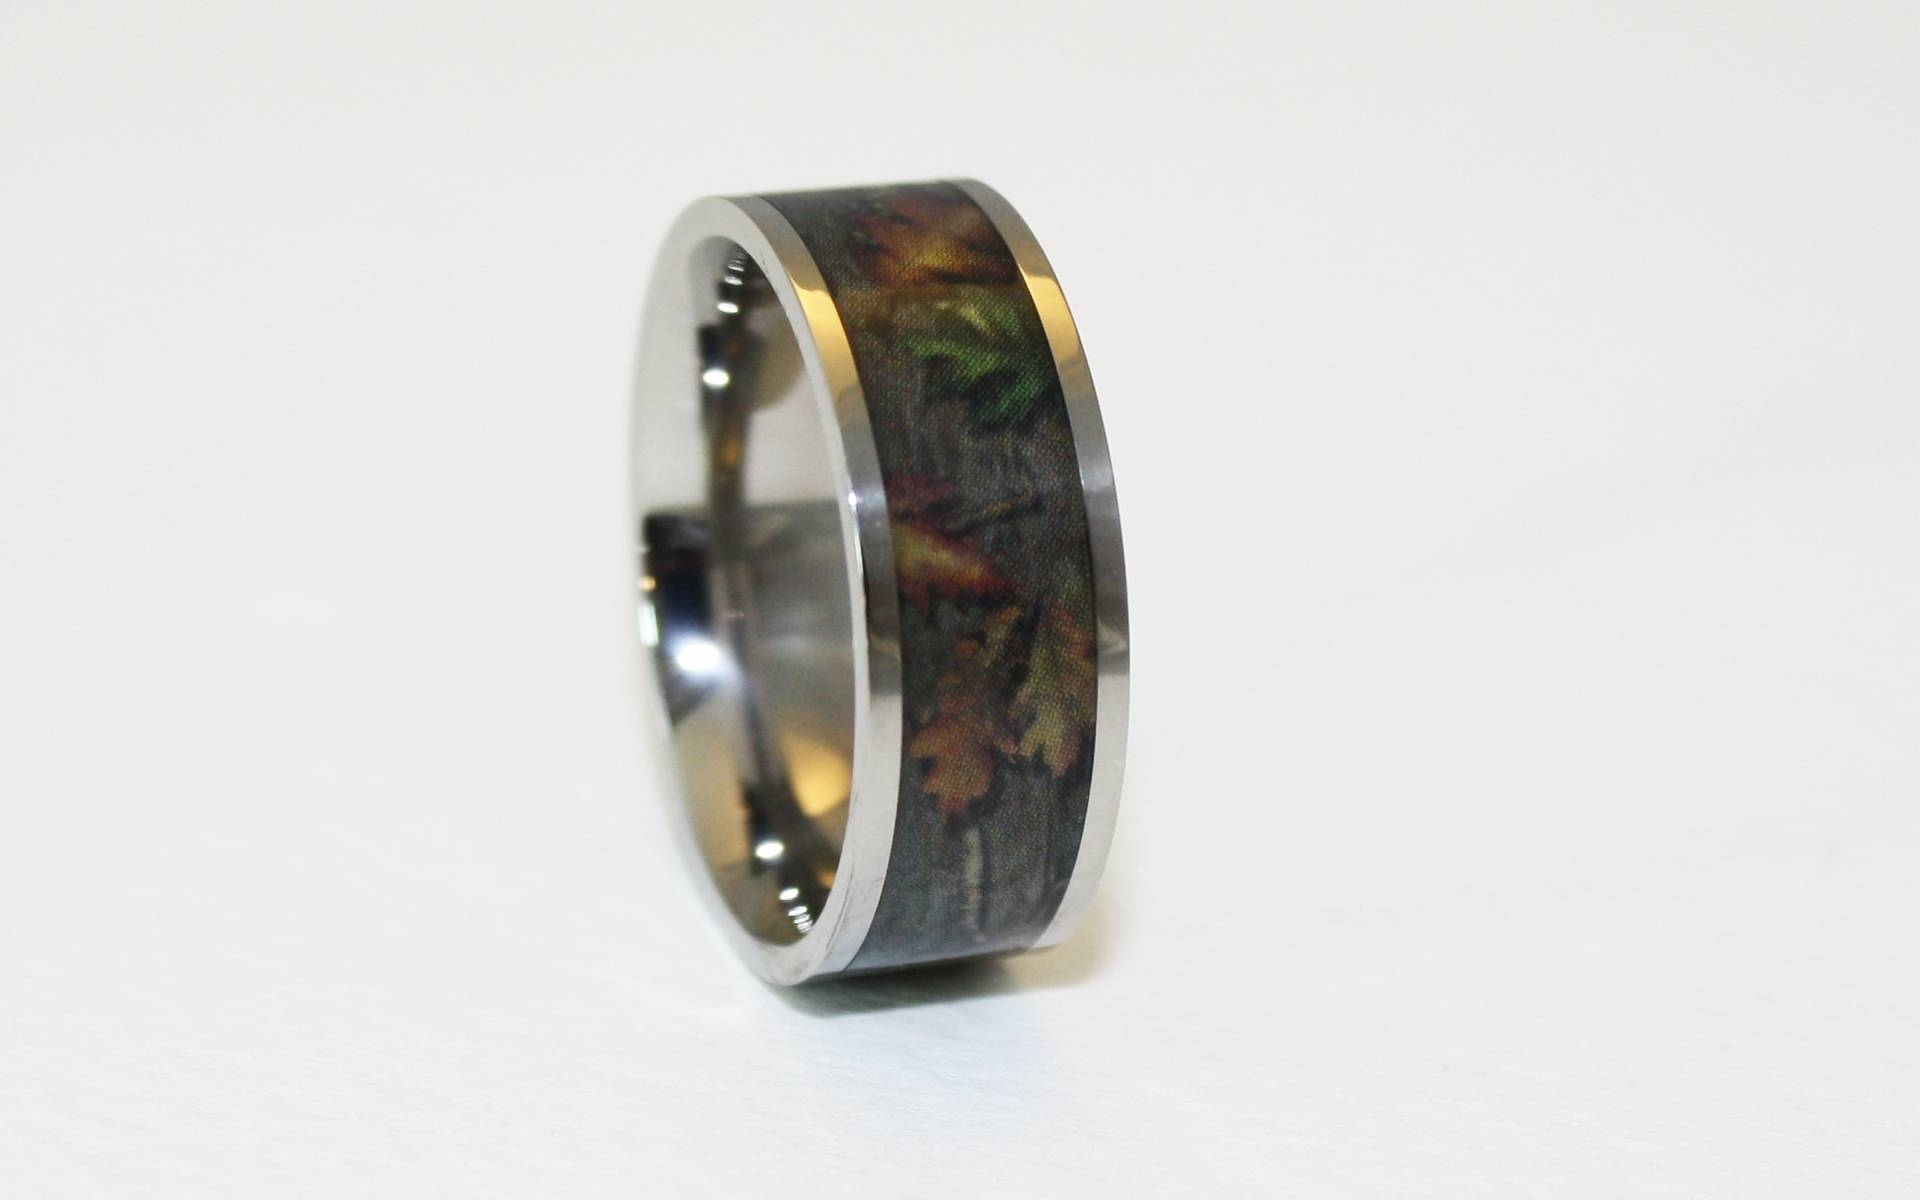 Pink Camo Ring Bevel Titanium Camo Rings Hunting Camo Wedding Ring For Custom Camo Wedding Rings (View 10 of 15)